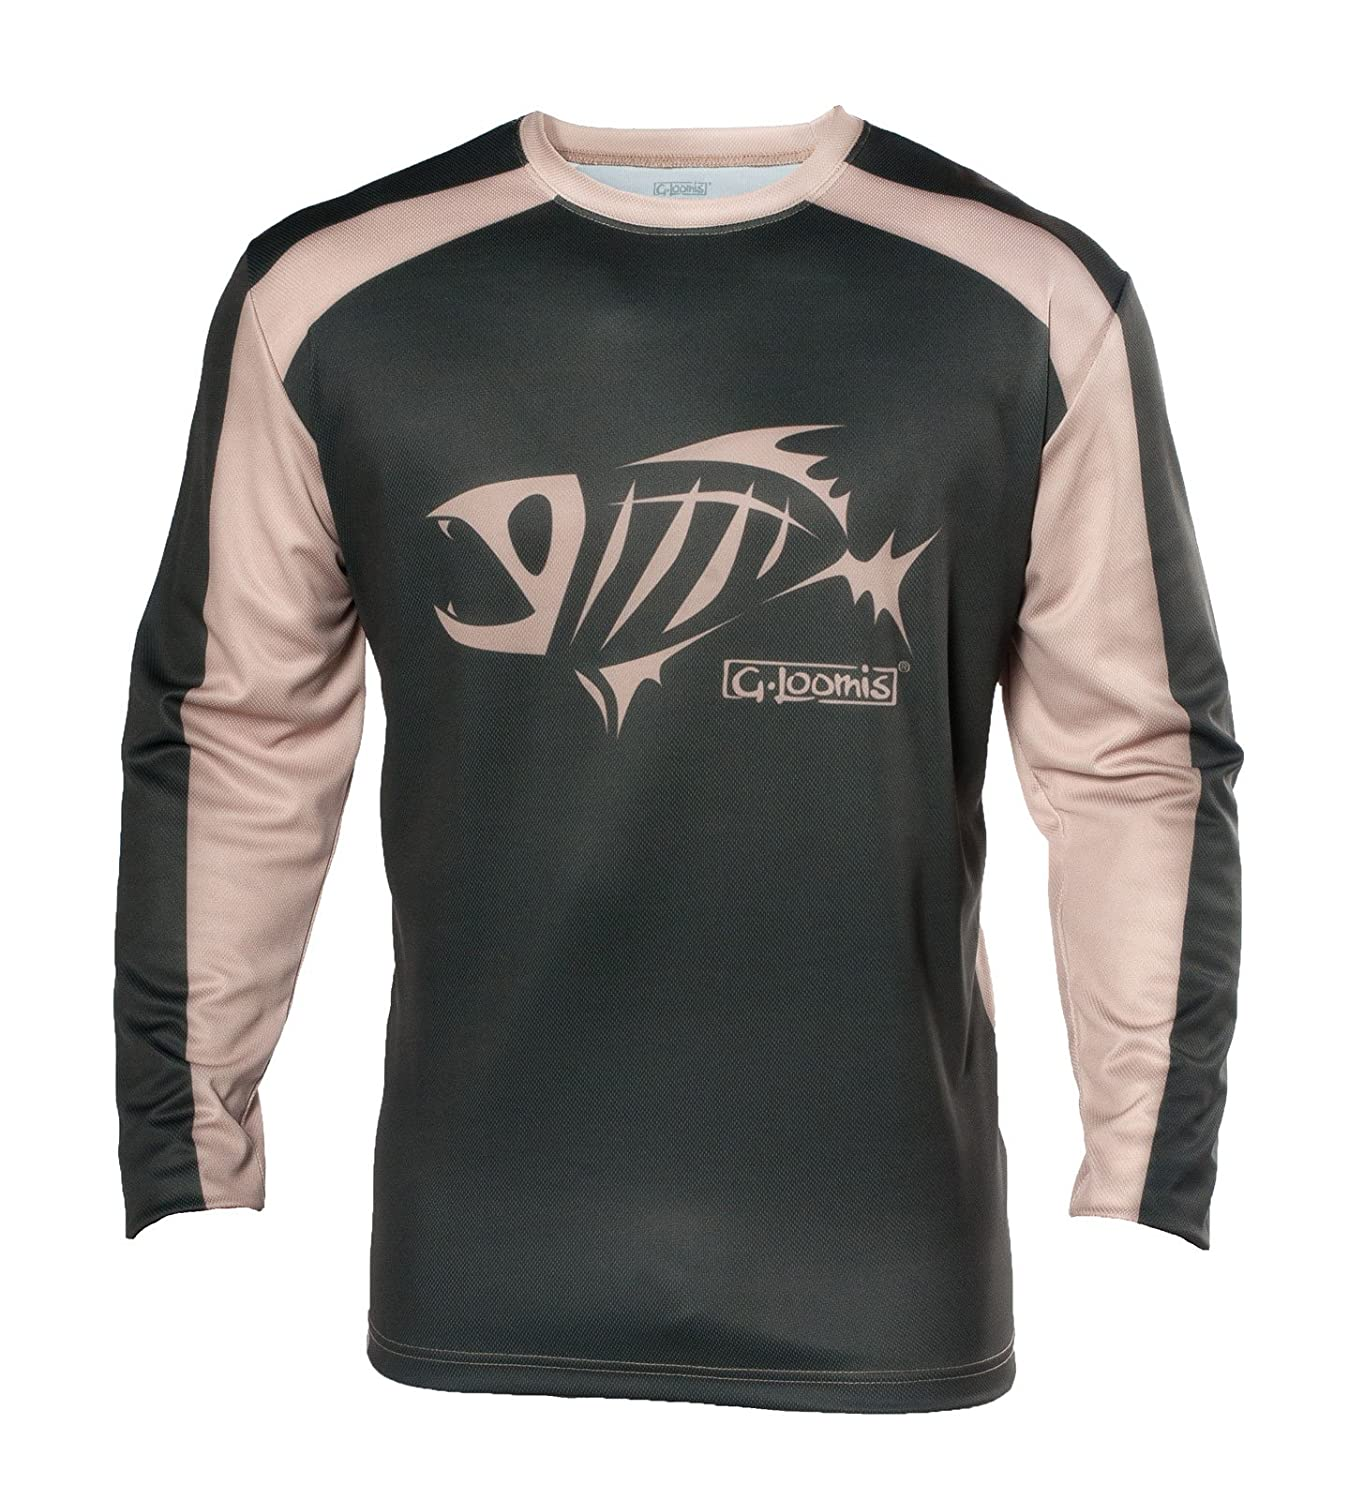 G. Loomis Technical Long Sleeve Sublimated Shirt g loomis smallmouth bronzeback fishing rod smr702ctw